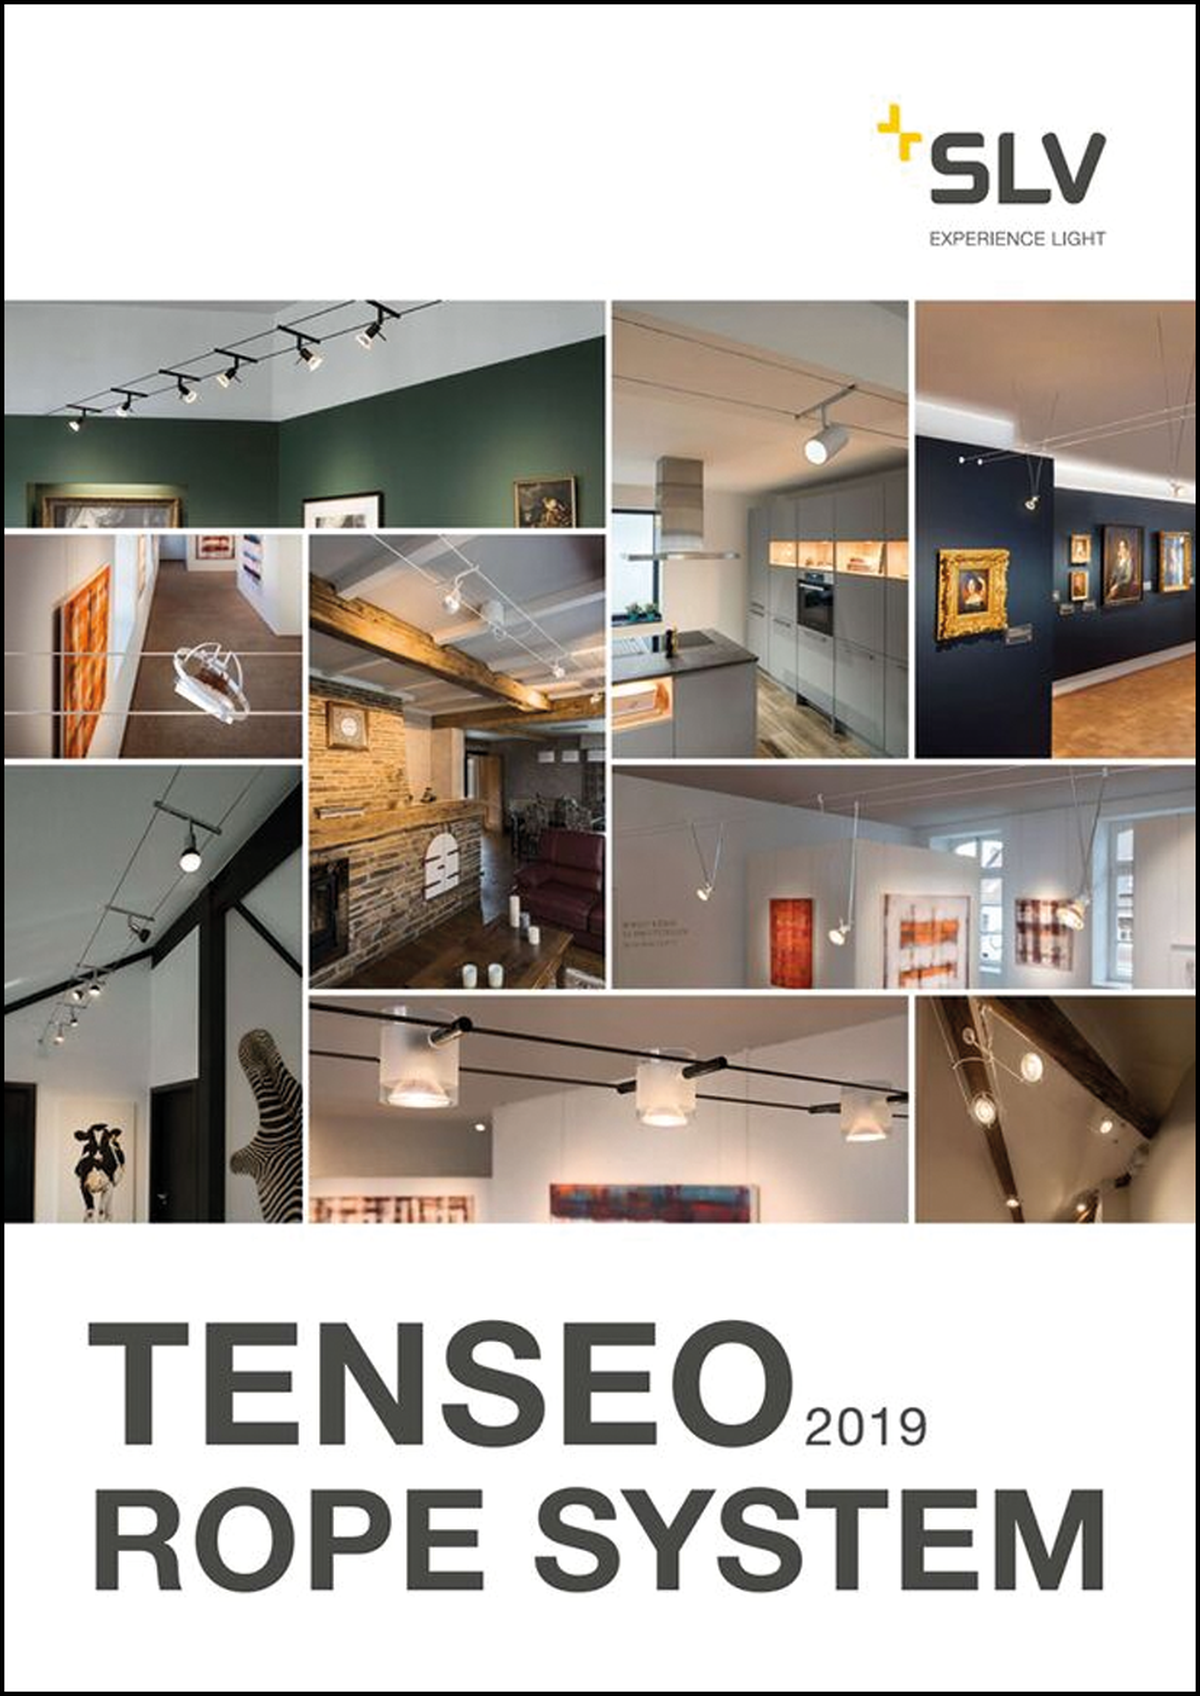 TENSEO Rope System 2019